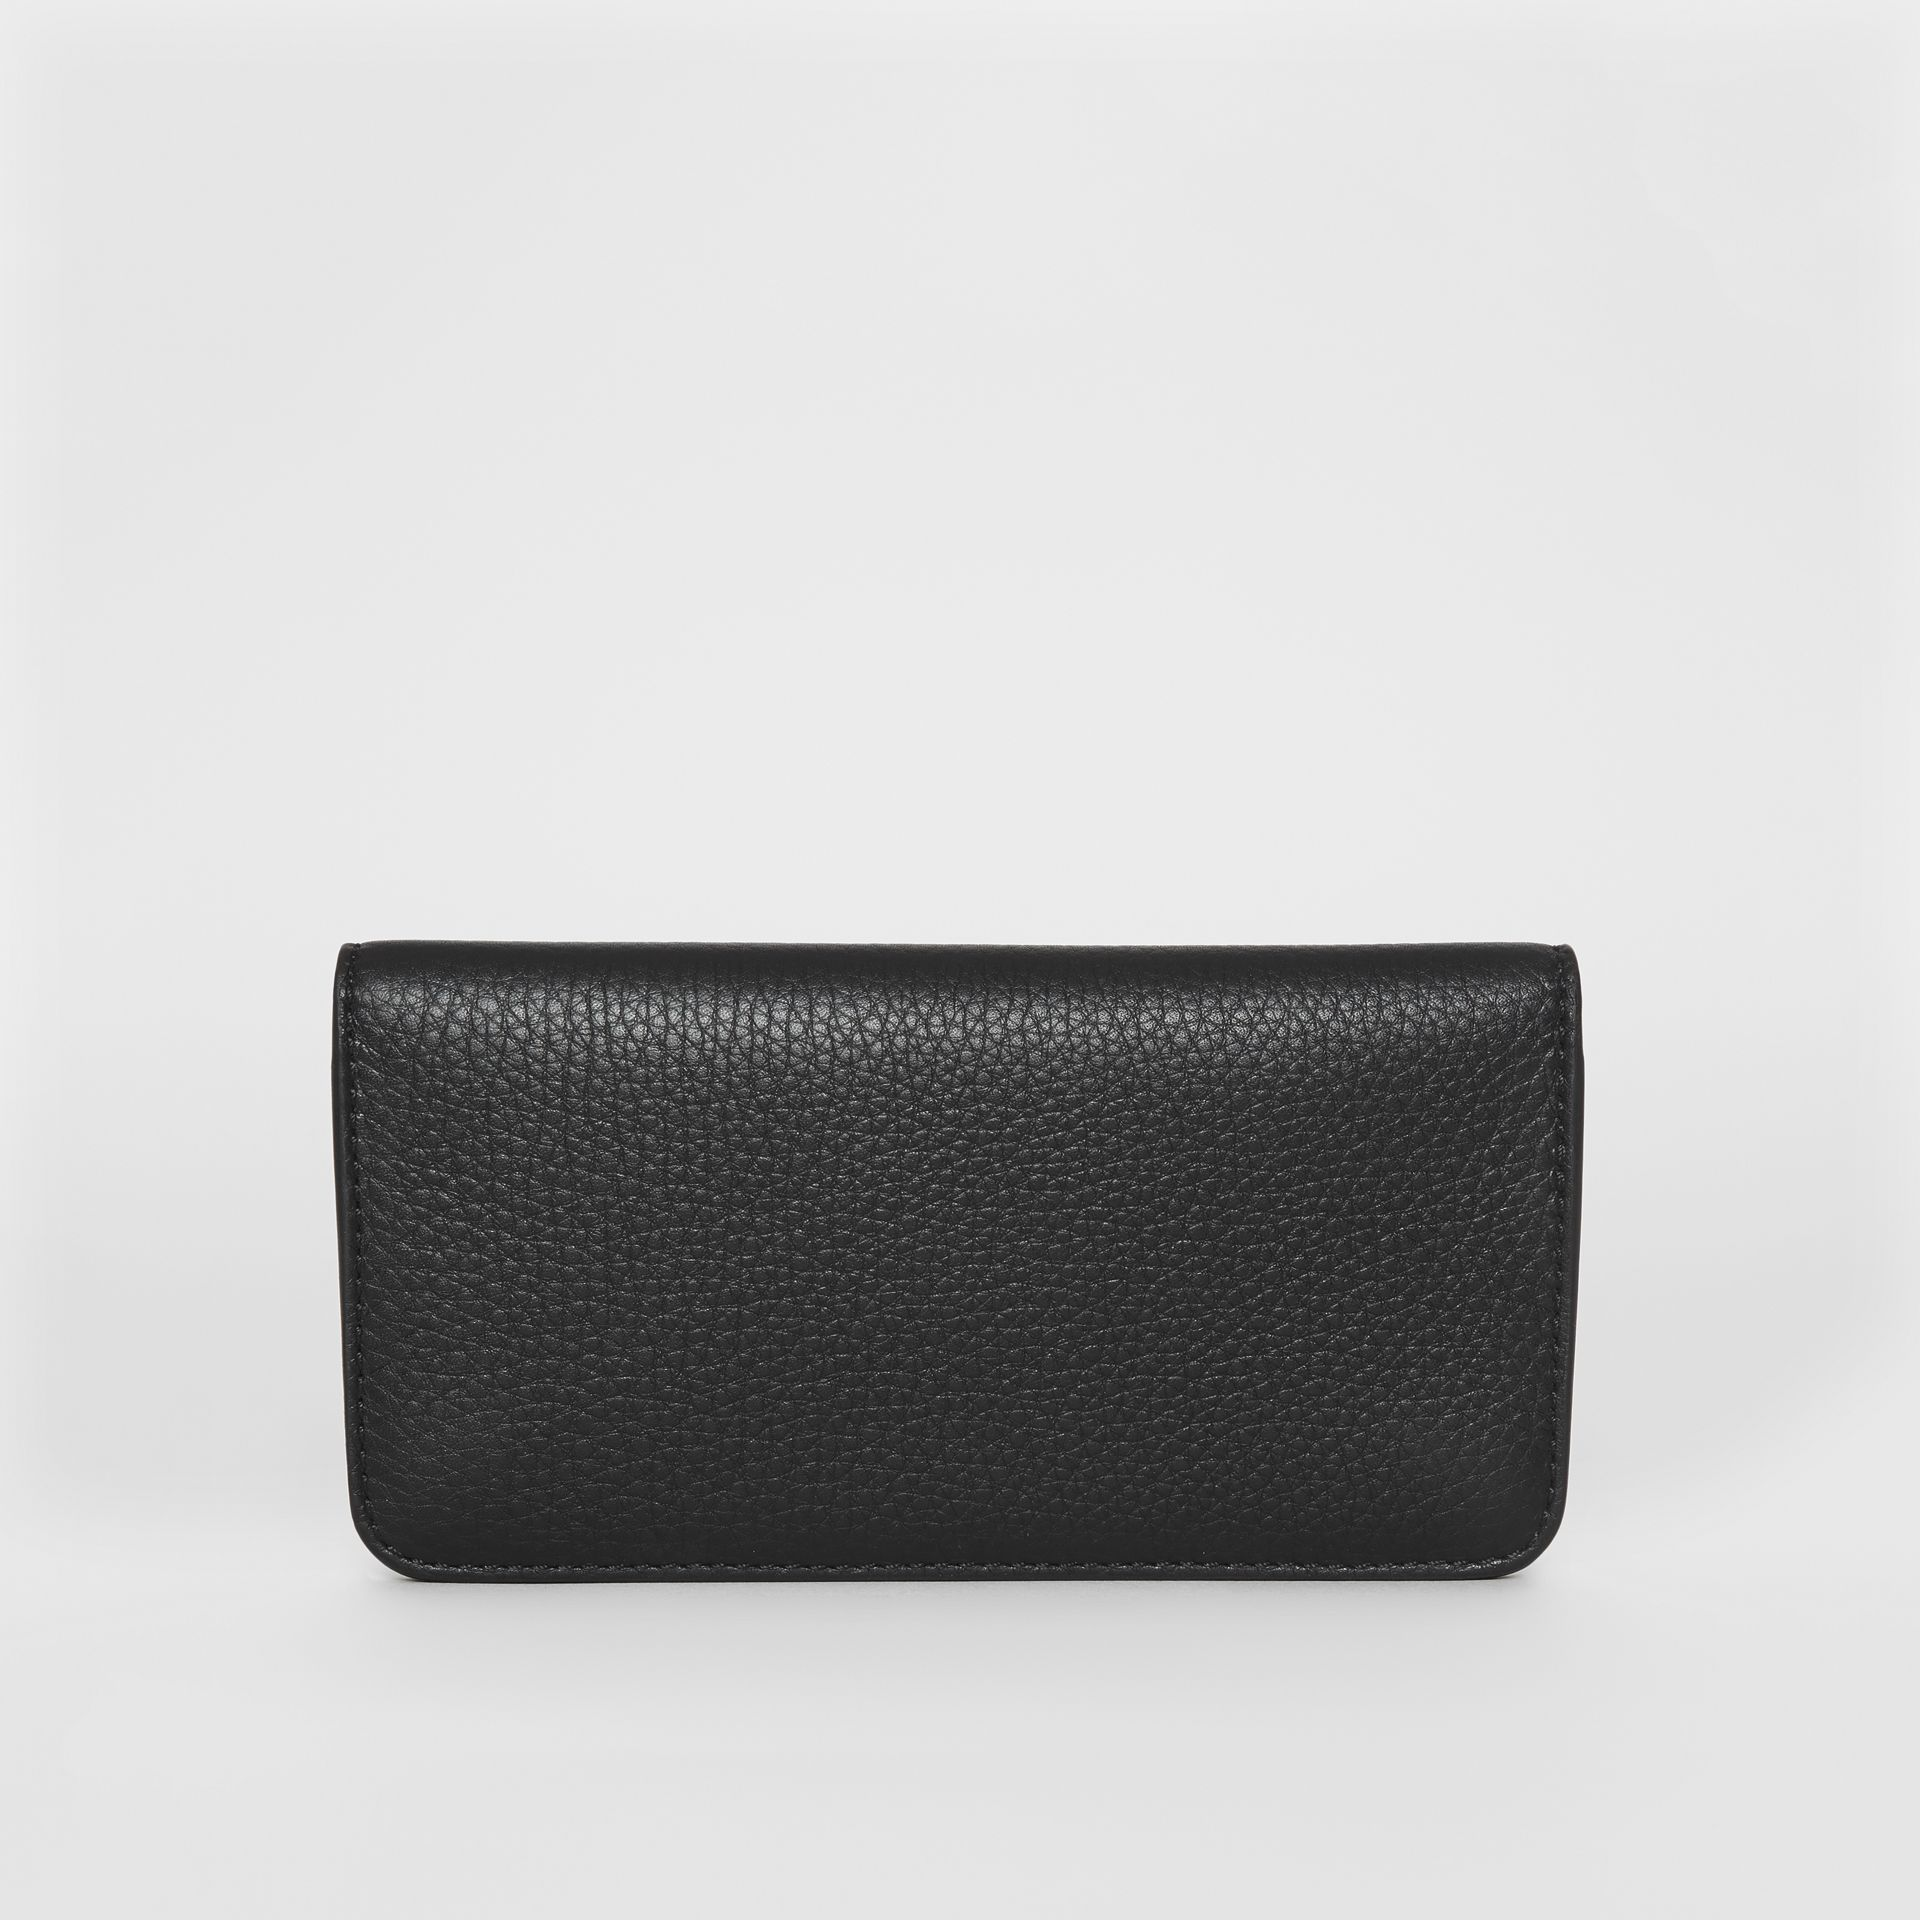 Leather Phone Wallet in Black - Women | Burberry - gallery image 5